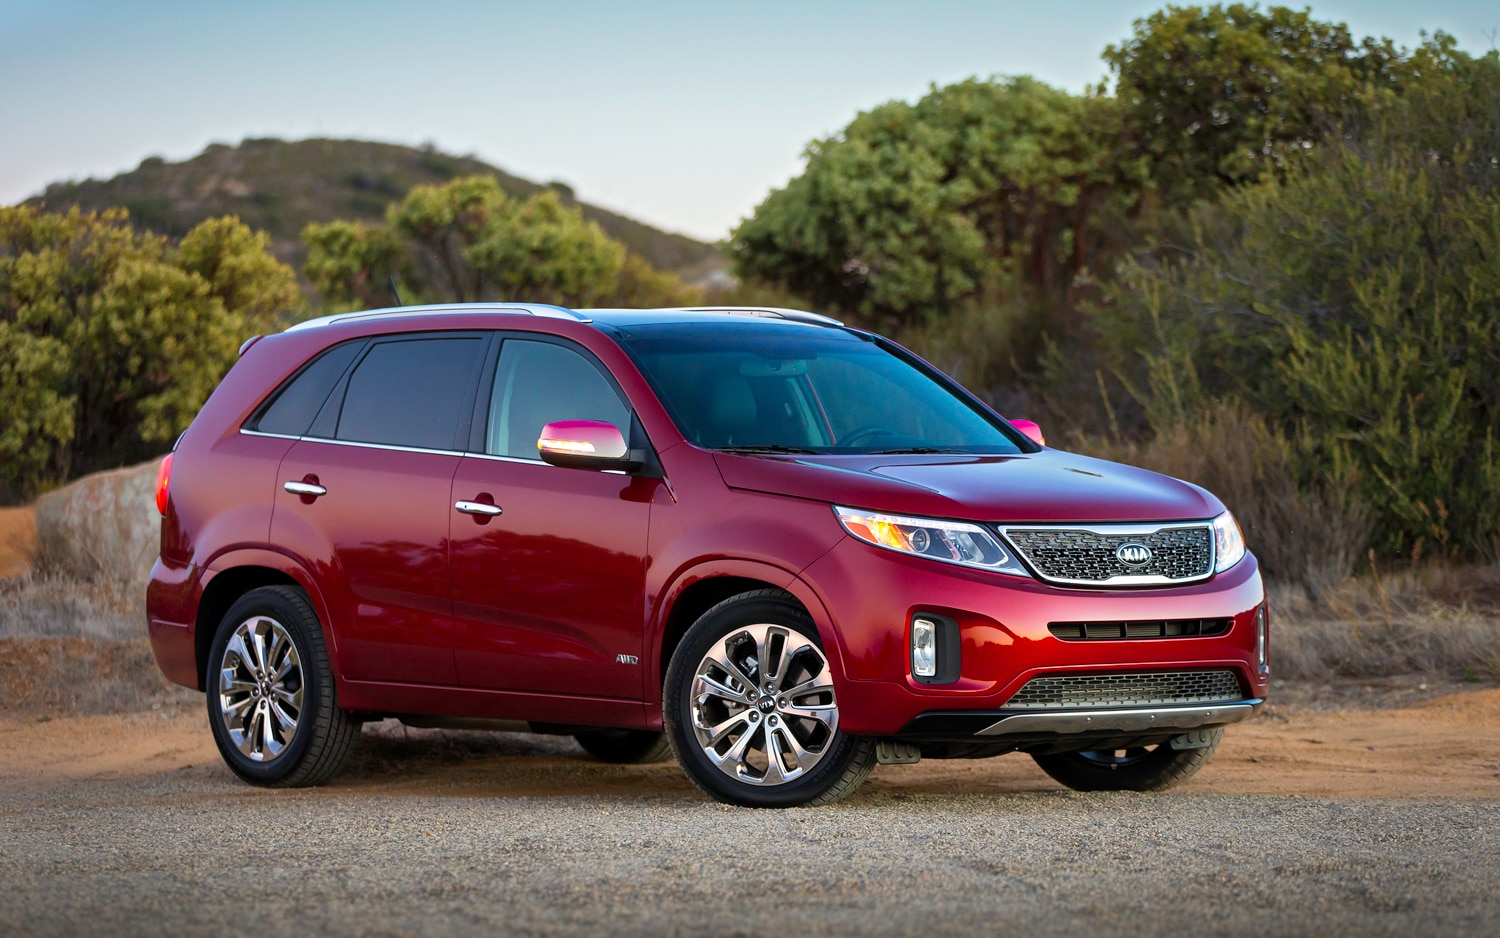 2014 Kia Sorento Front Right Side View